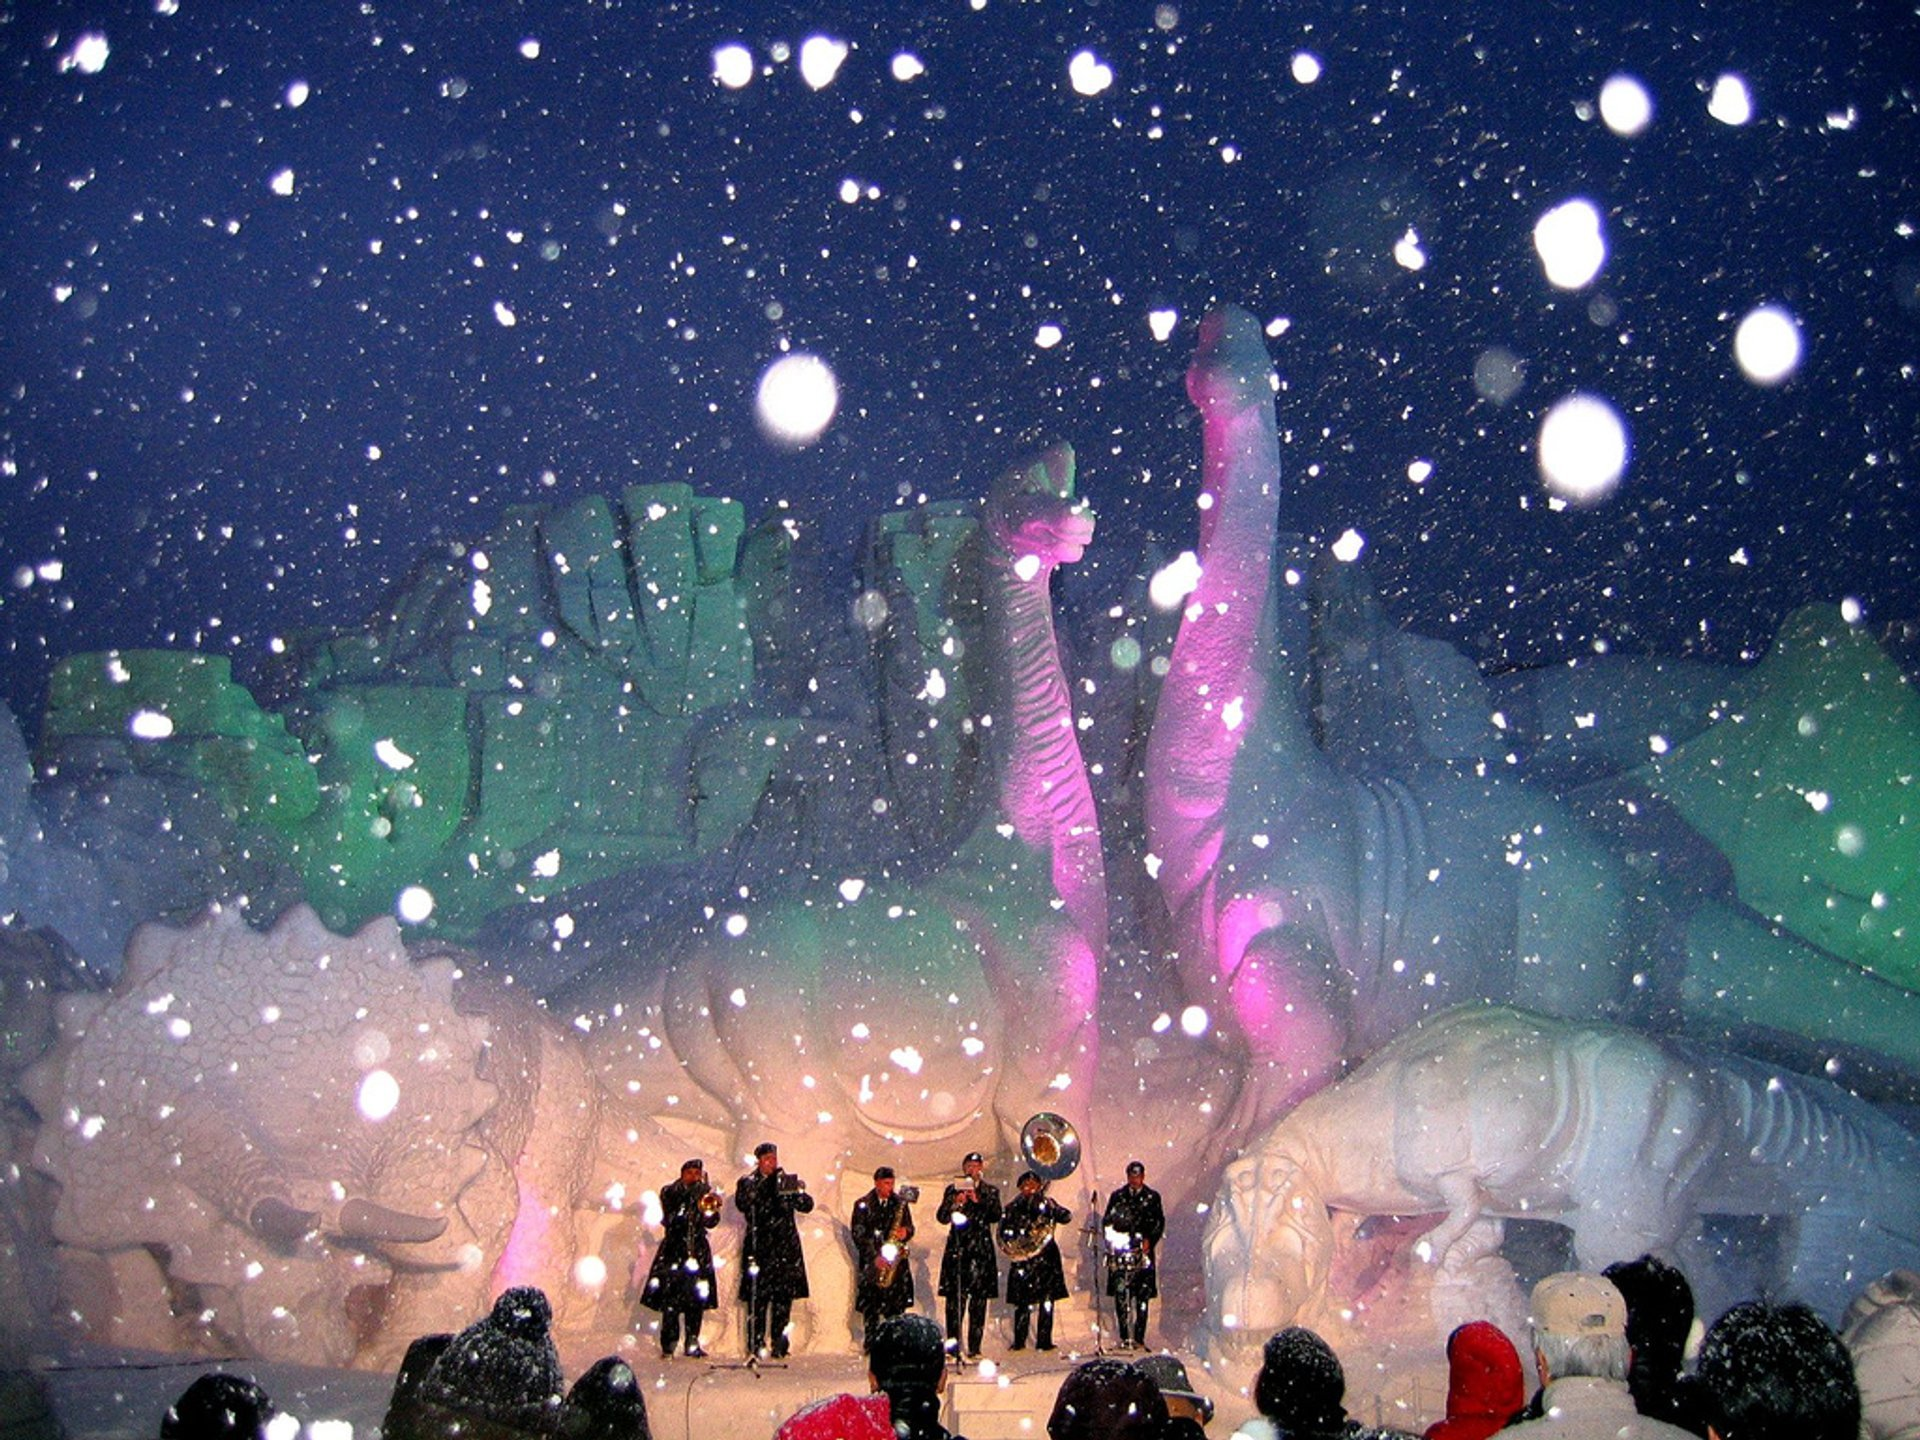 Sapporo Snow Festival in Japan - Best Season